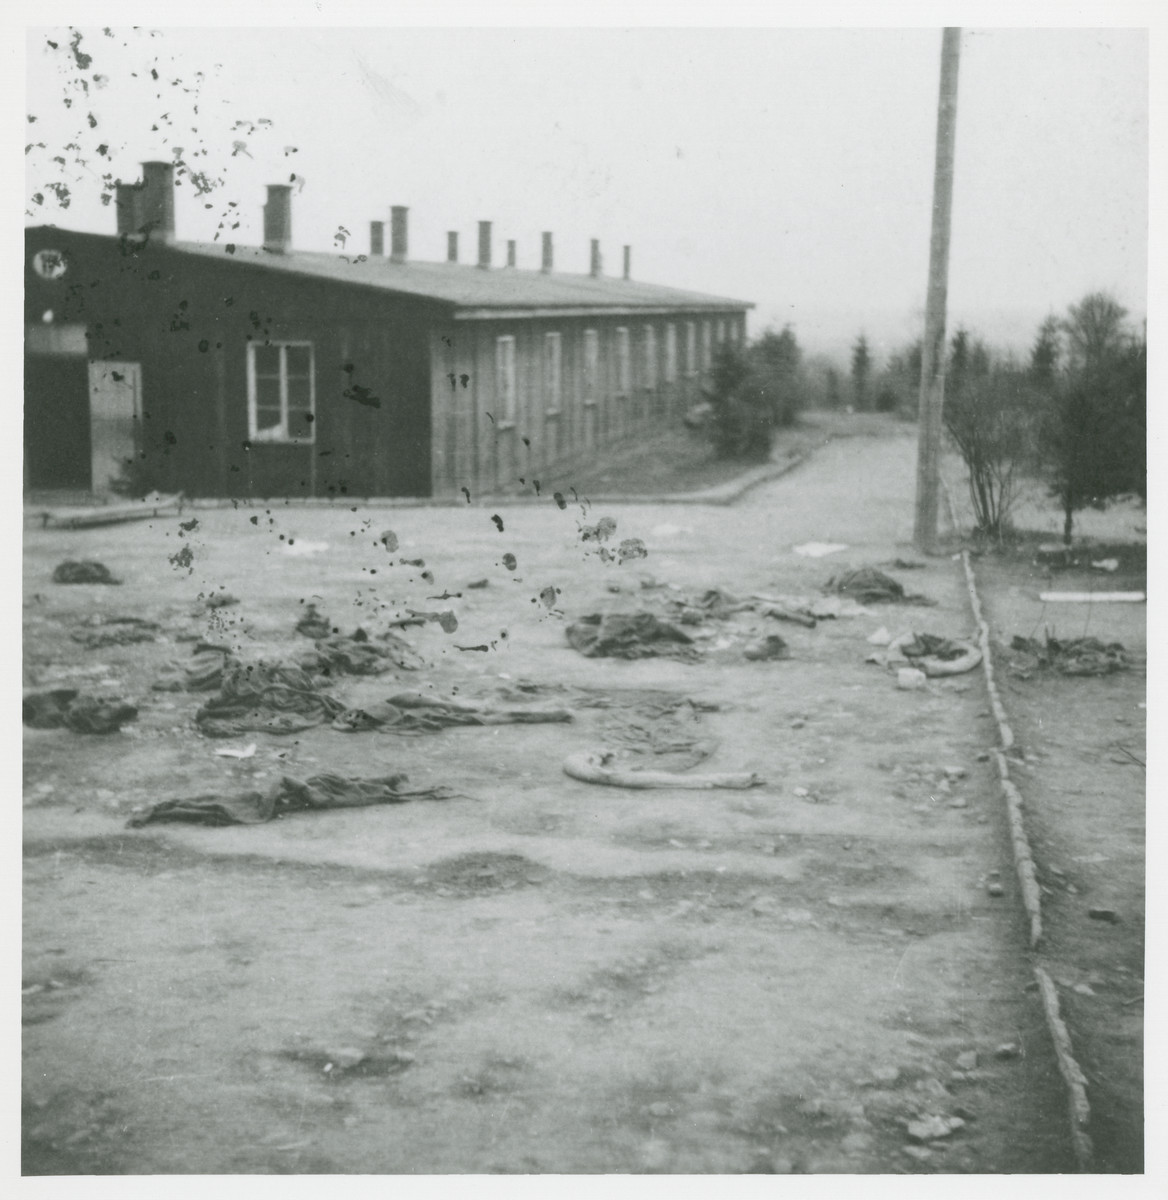 Prisoners' clothing and a barracks in the Ohrdruf concentration camp after liberation.